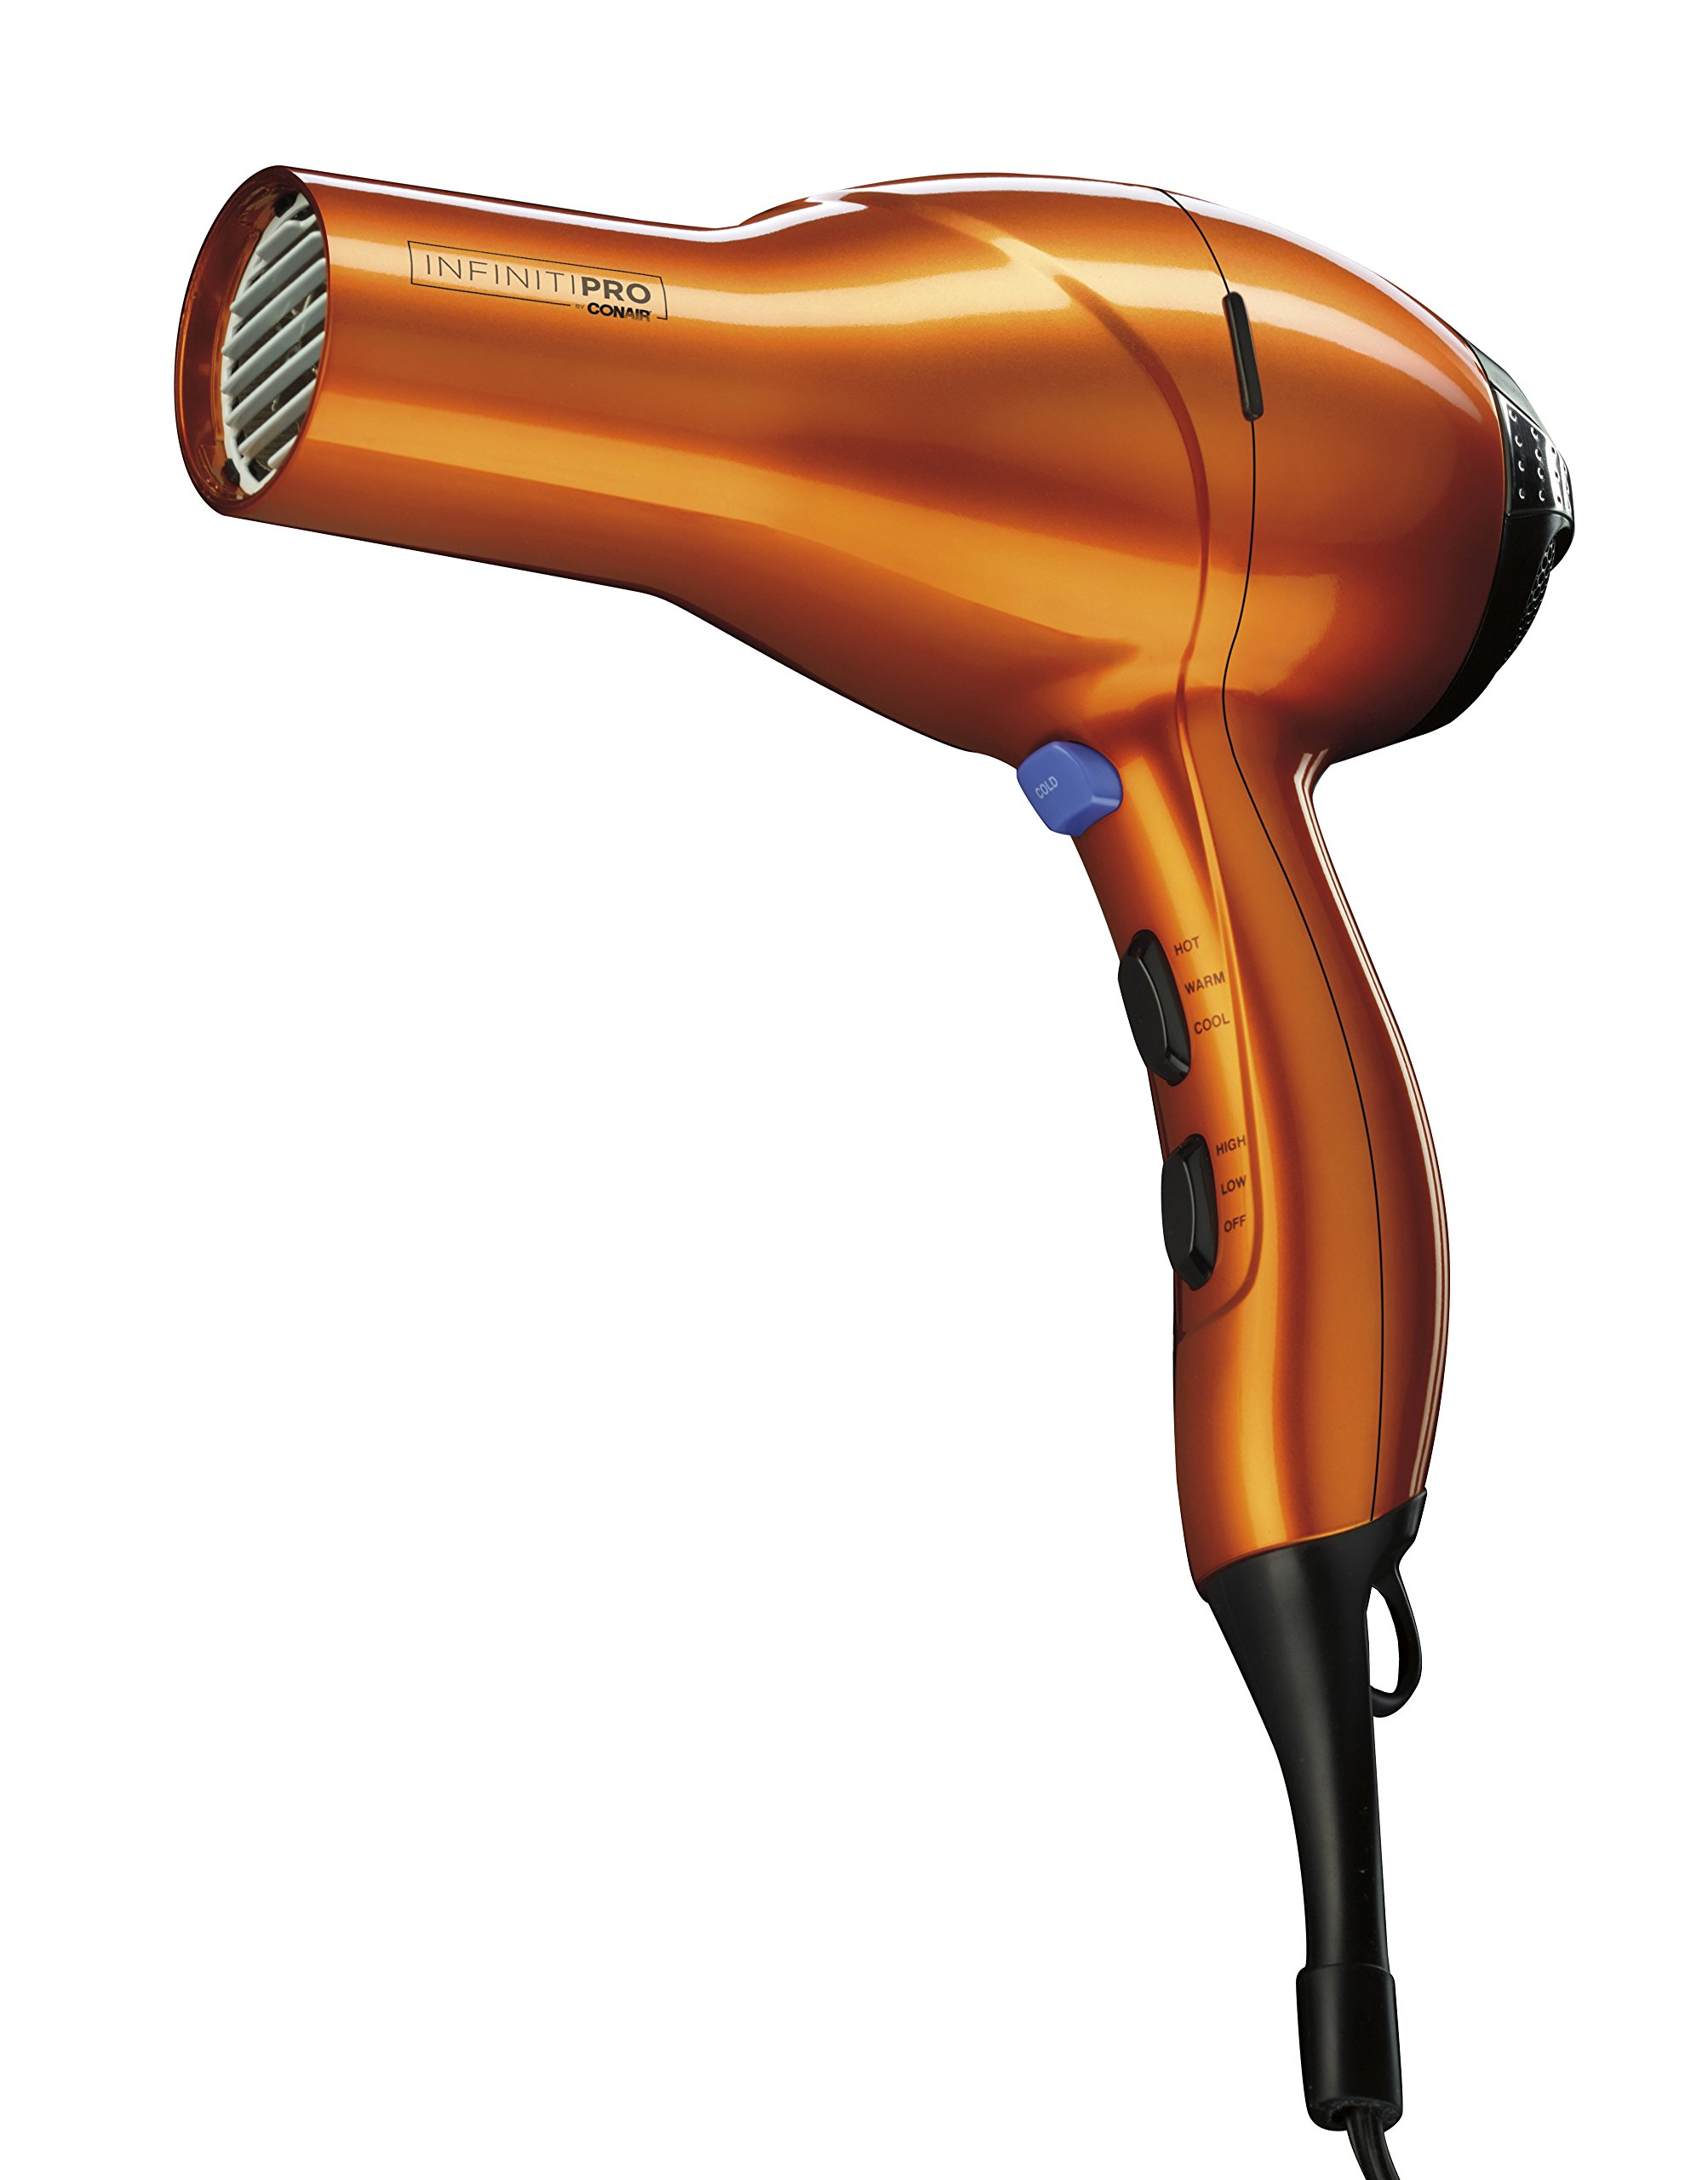 infinitipro by conair 1875 - 71fvDYhgGoL - INFINITIPRO BY CONAIR 1875 Watt Salon Performance AC Motor Styling Tool/Hair Dryer; Orange